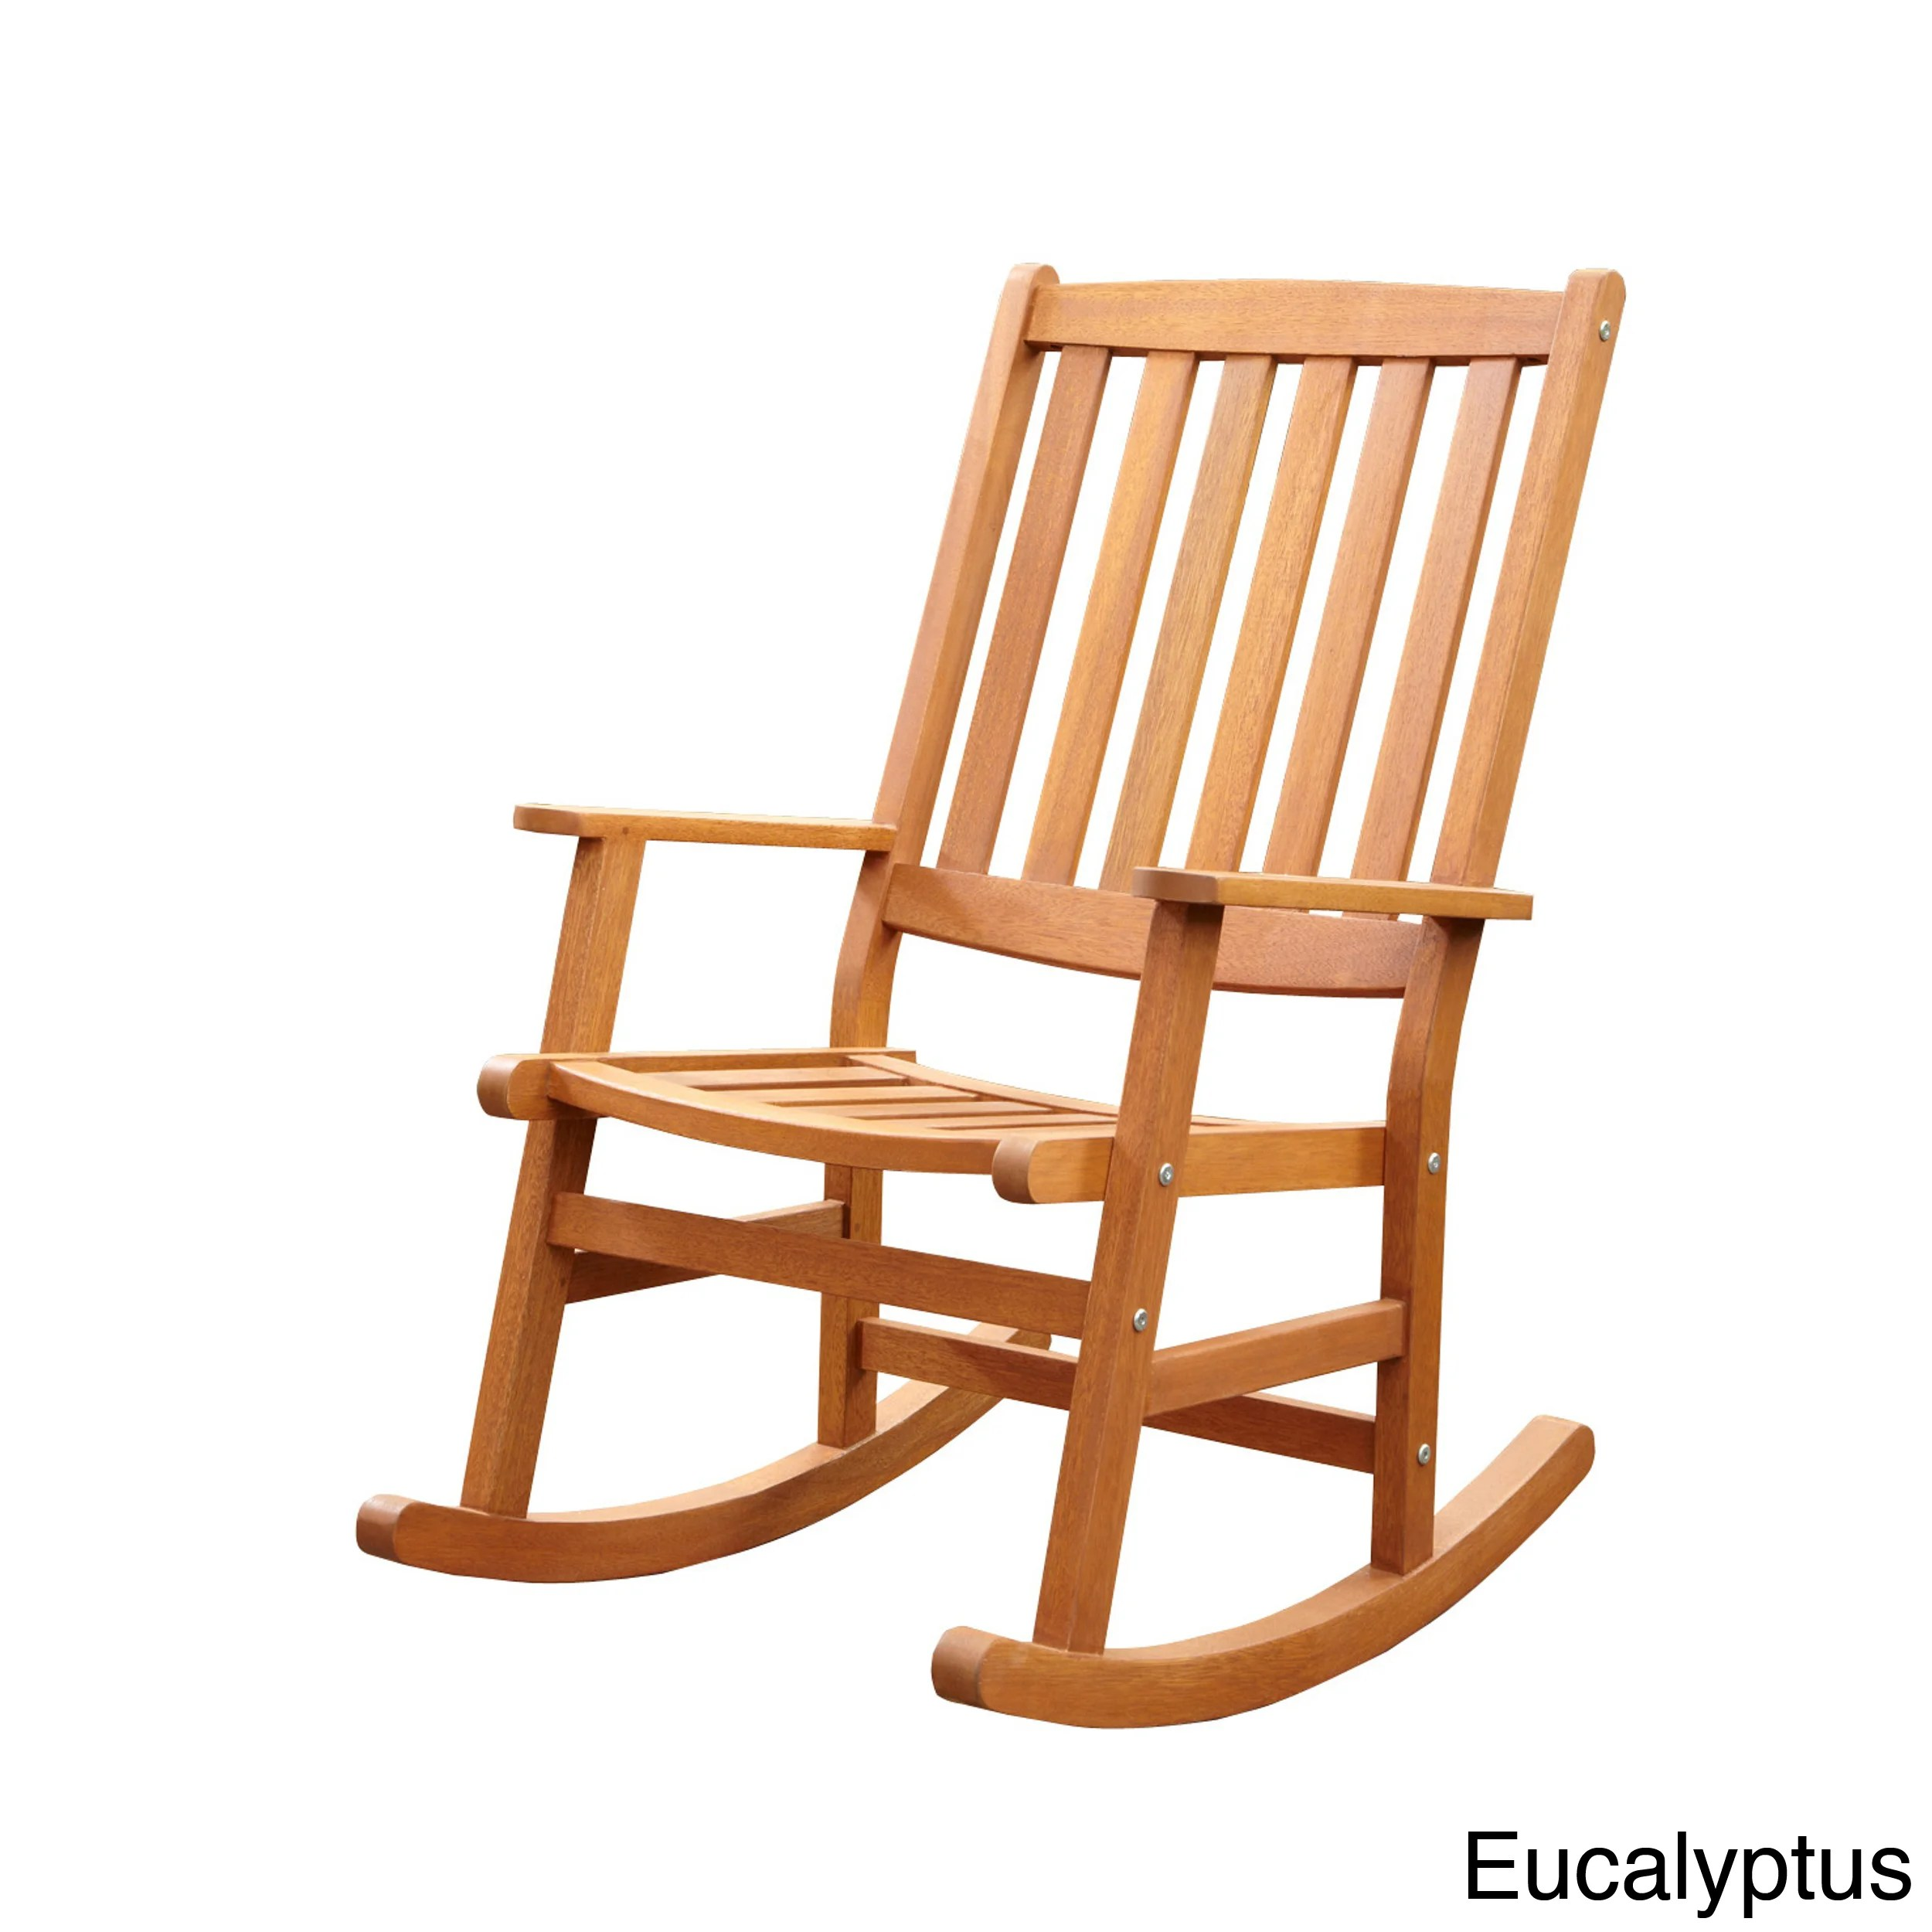 Overstock Rocking Chairs Bali Hai Outdoor Rocking Chair Overstock Shopping Big